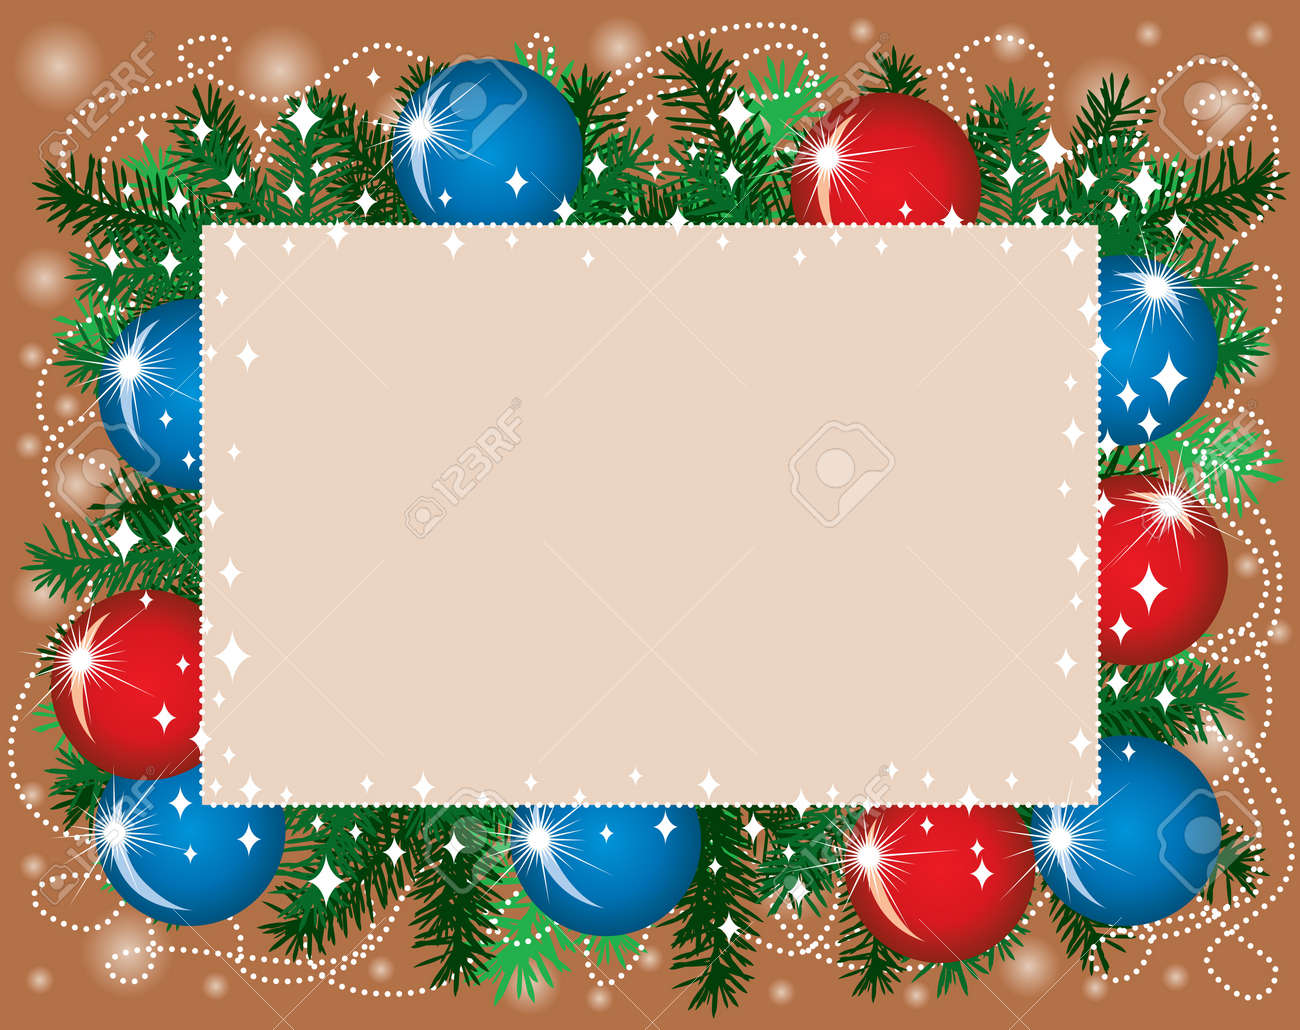 New Year congratulatory background with fir tree branches, red and blue balloons and confetti Stock Vector - 14690559